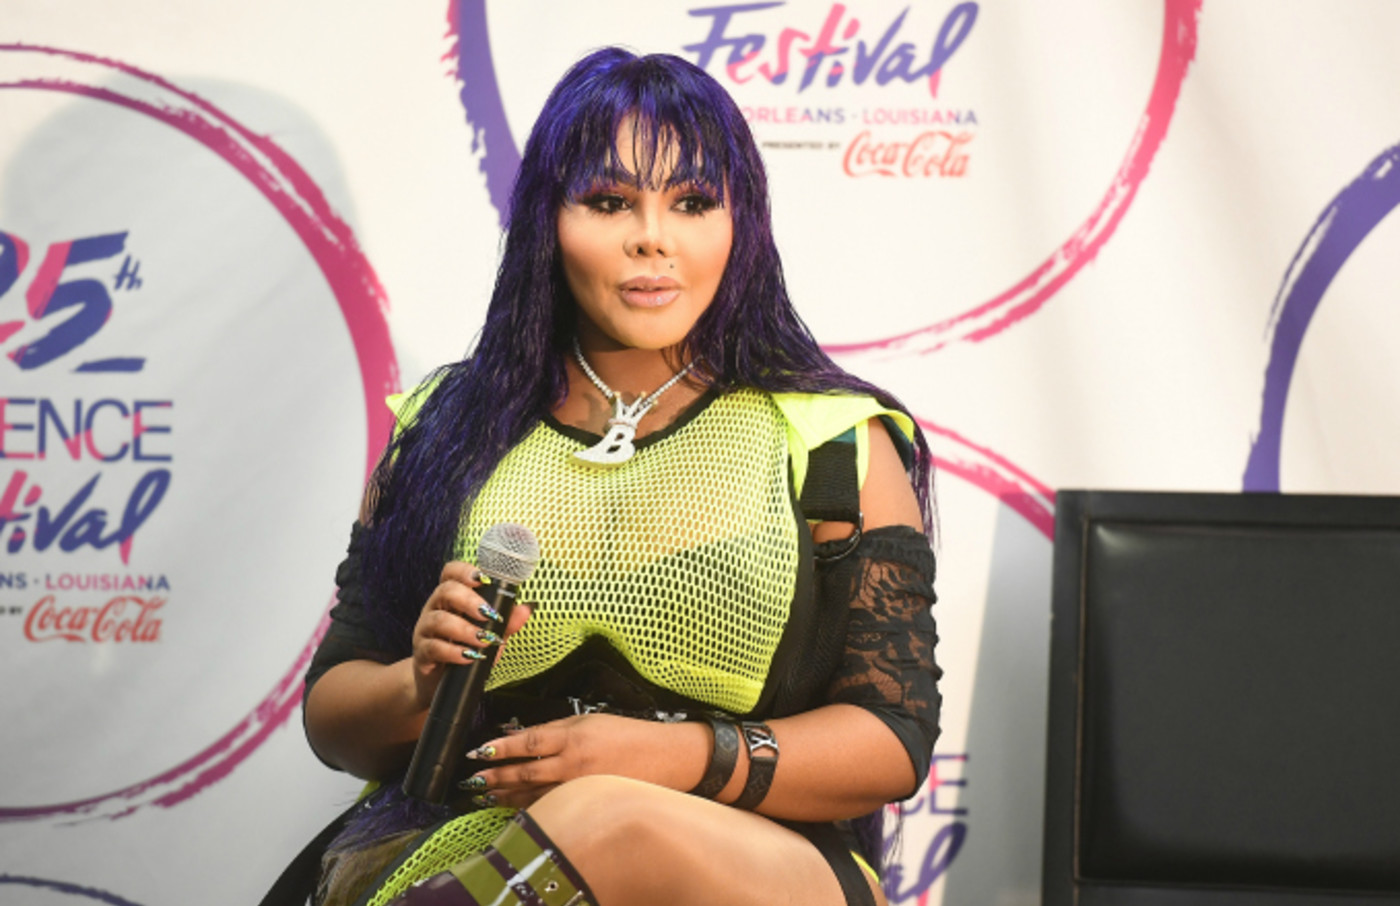 Rapper Lil Kim seen backstage during the 2019 ESSENCE Festival